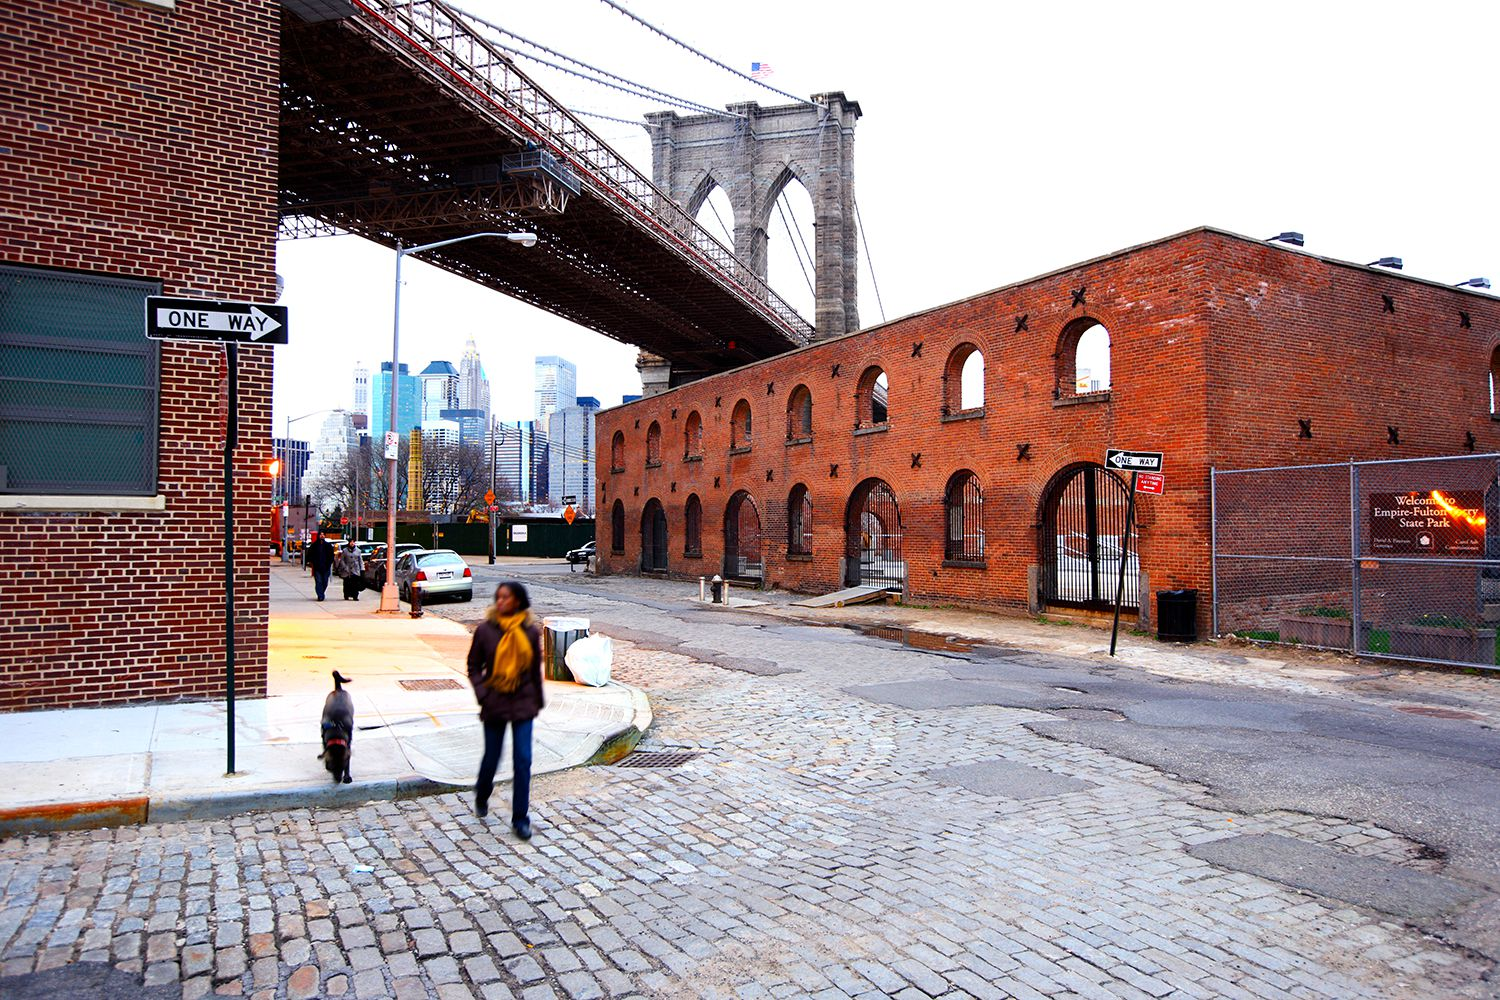 10 Things to Do in DUMBO on Front Street